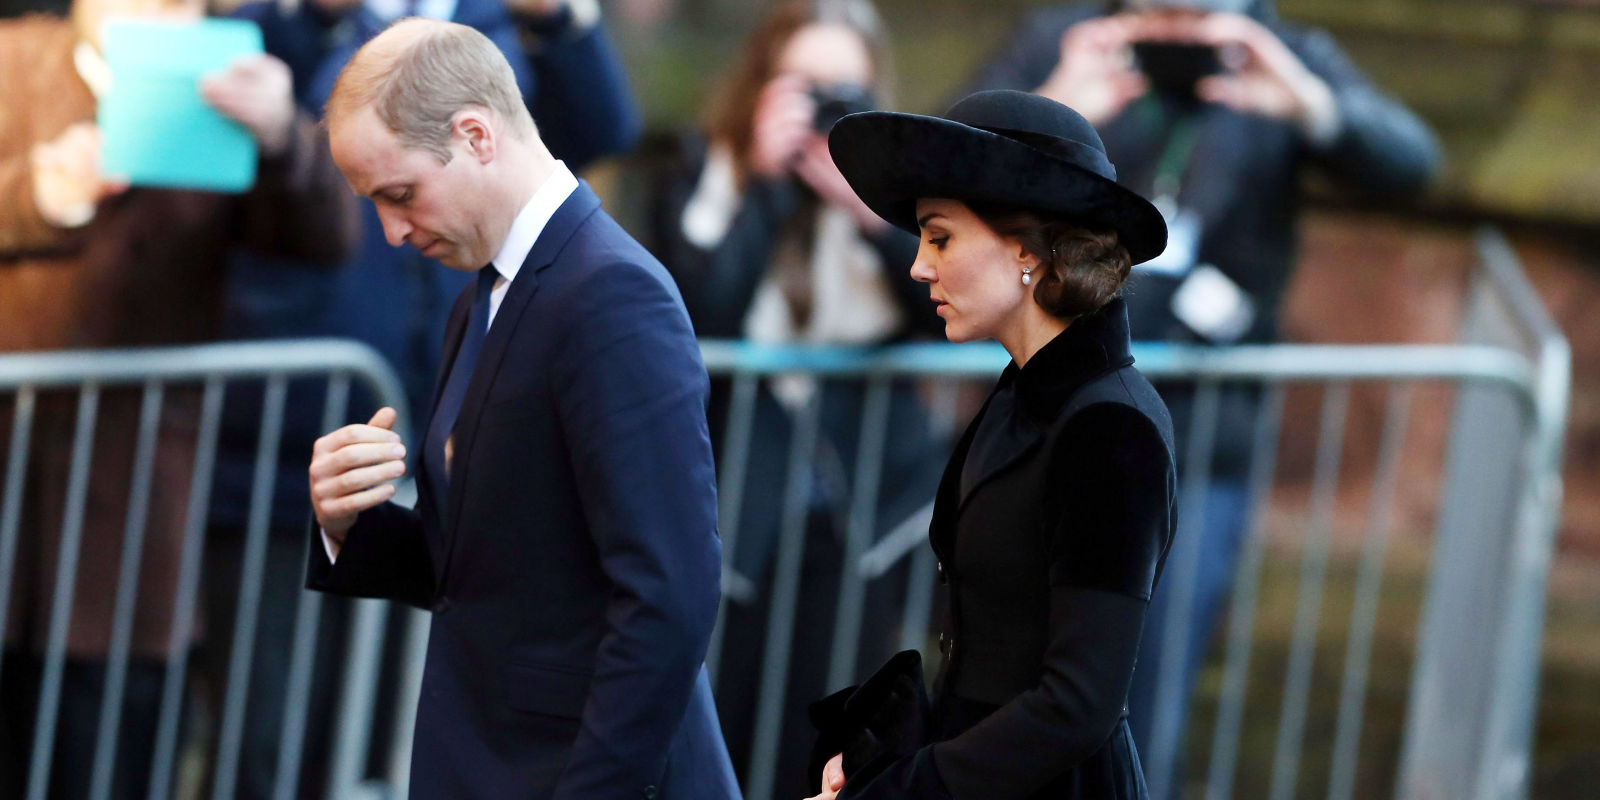 kate middleton and william dating history In her latest project, a revised and expanded version of her book william and harry: behind the palace walls, nicholl redirects her attention to chronicling prince william and kate middleton's eight-year relationship, starting from the moment william saw kate in that famed see-through dress and leading up to their.